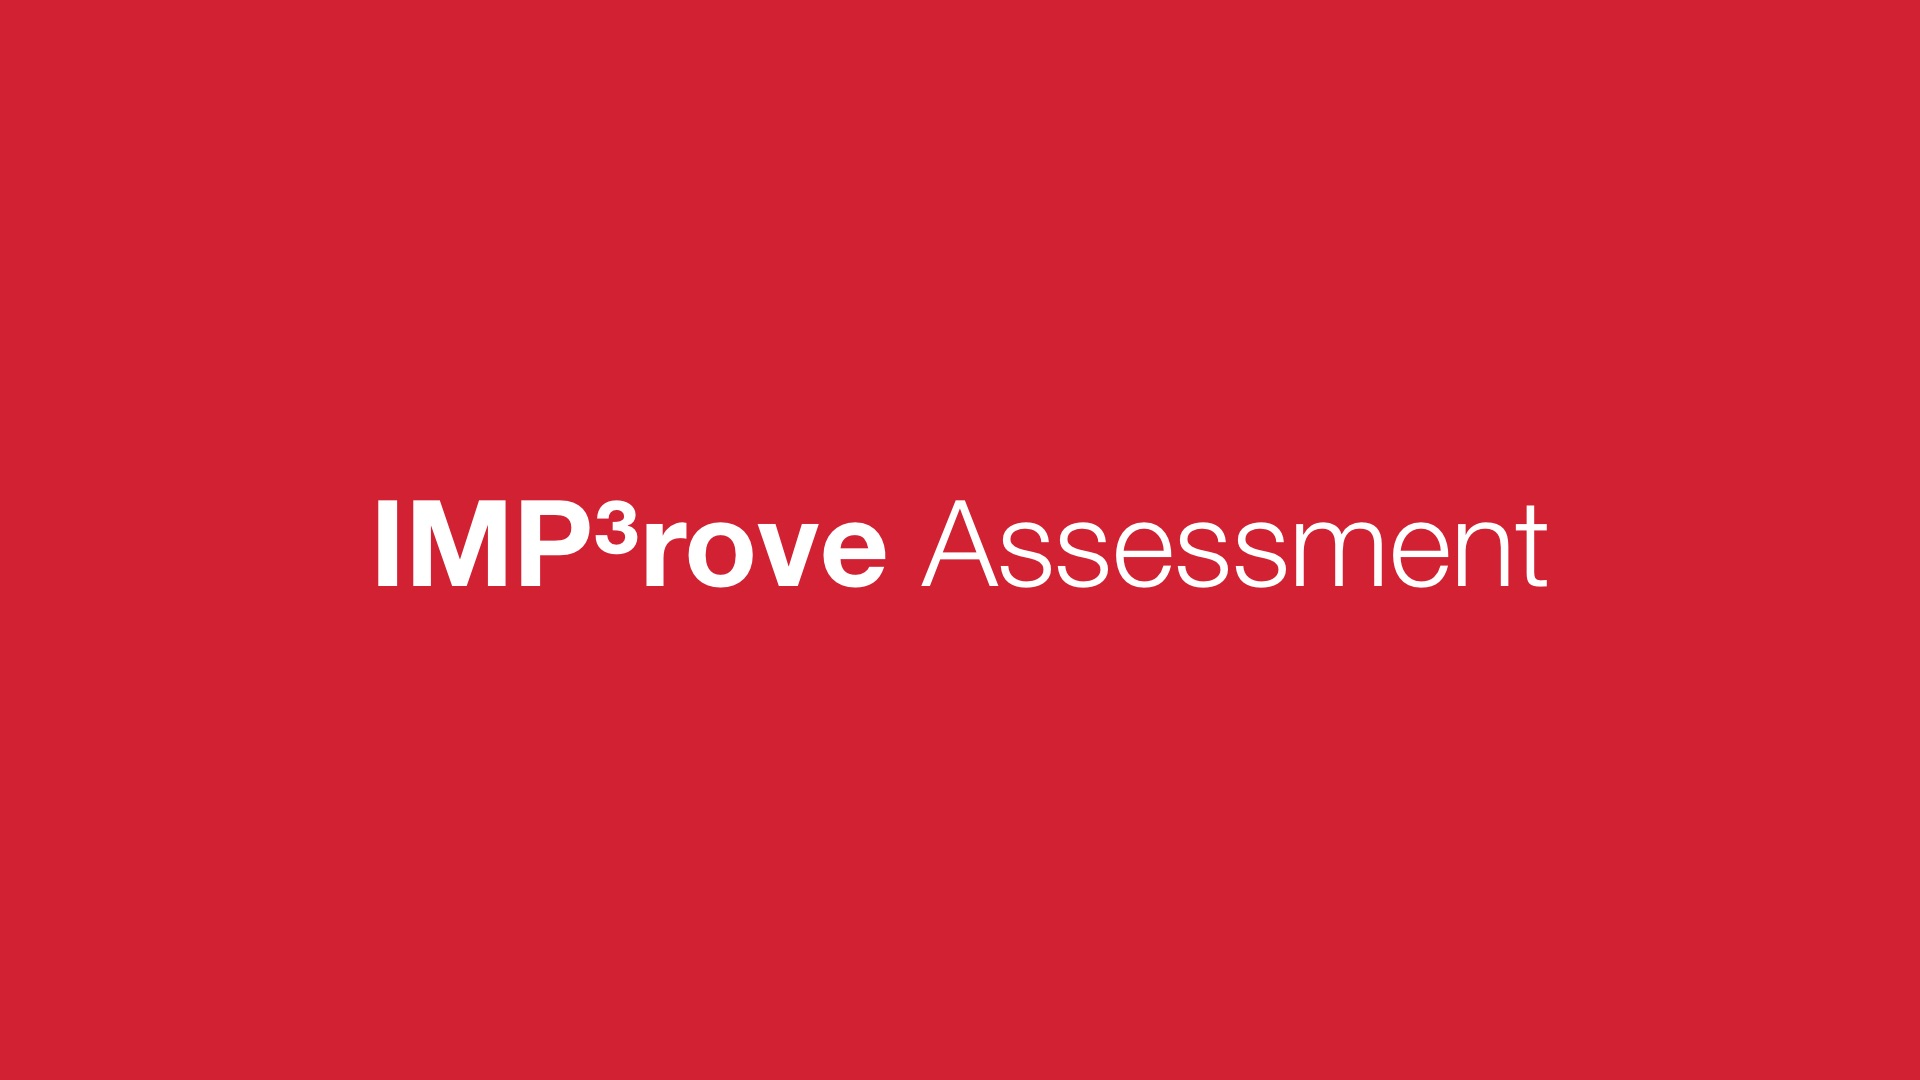 IMP³rove Assessment, gives IMR a high rating in comparison to related companies in Europe and the world